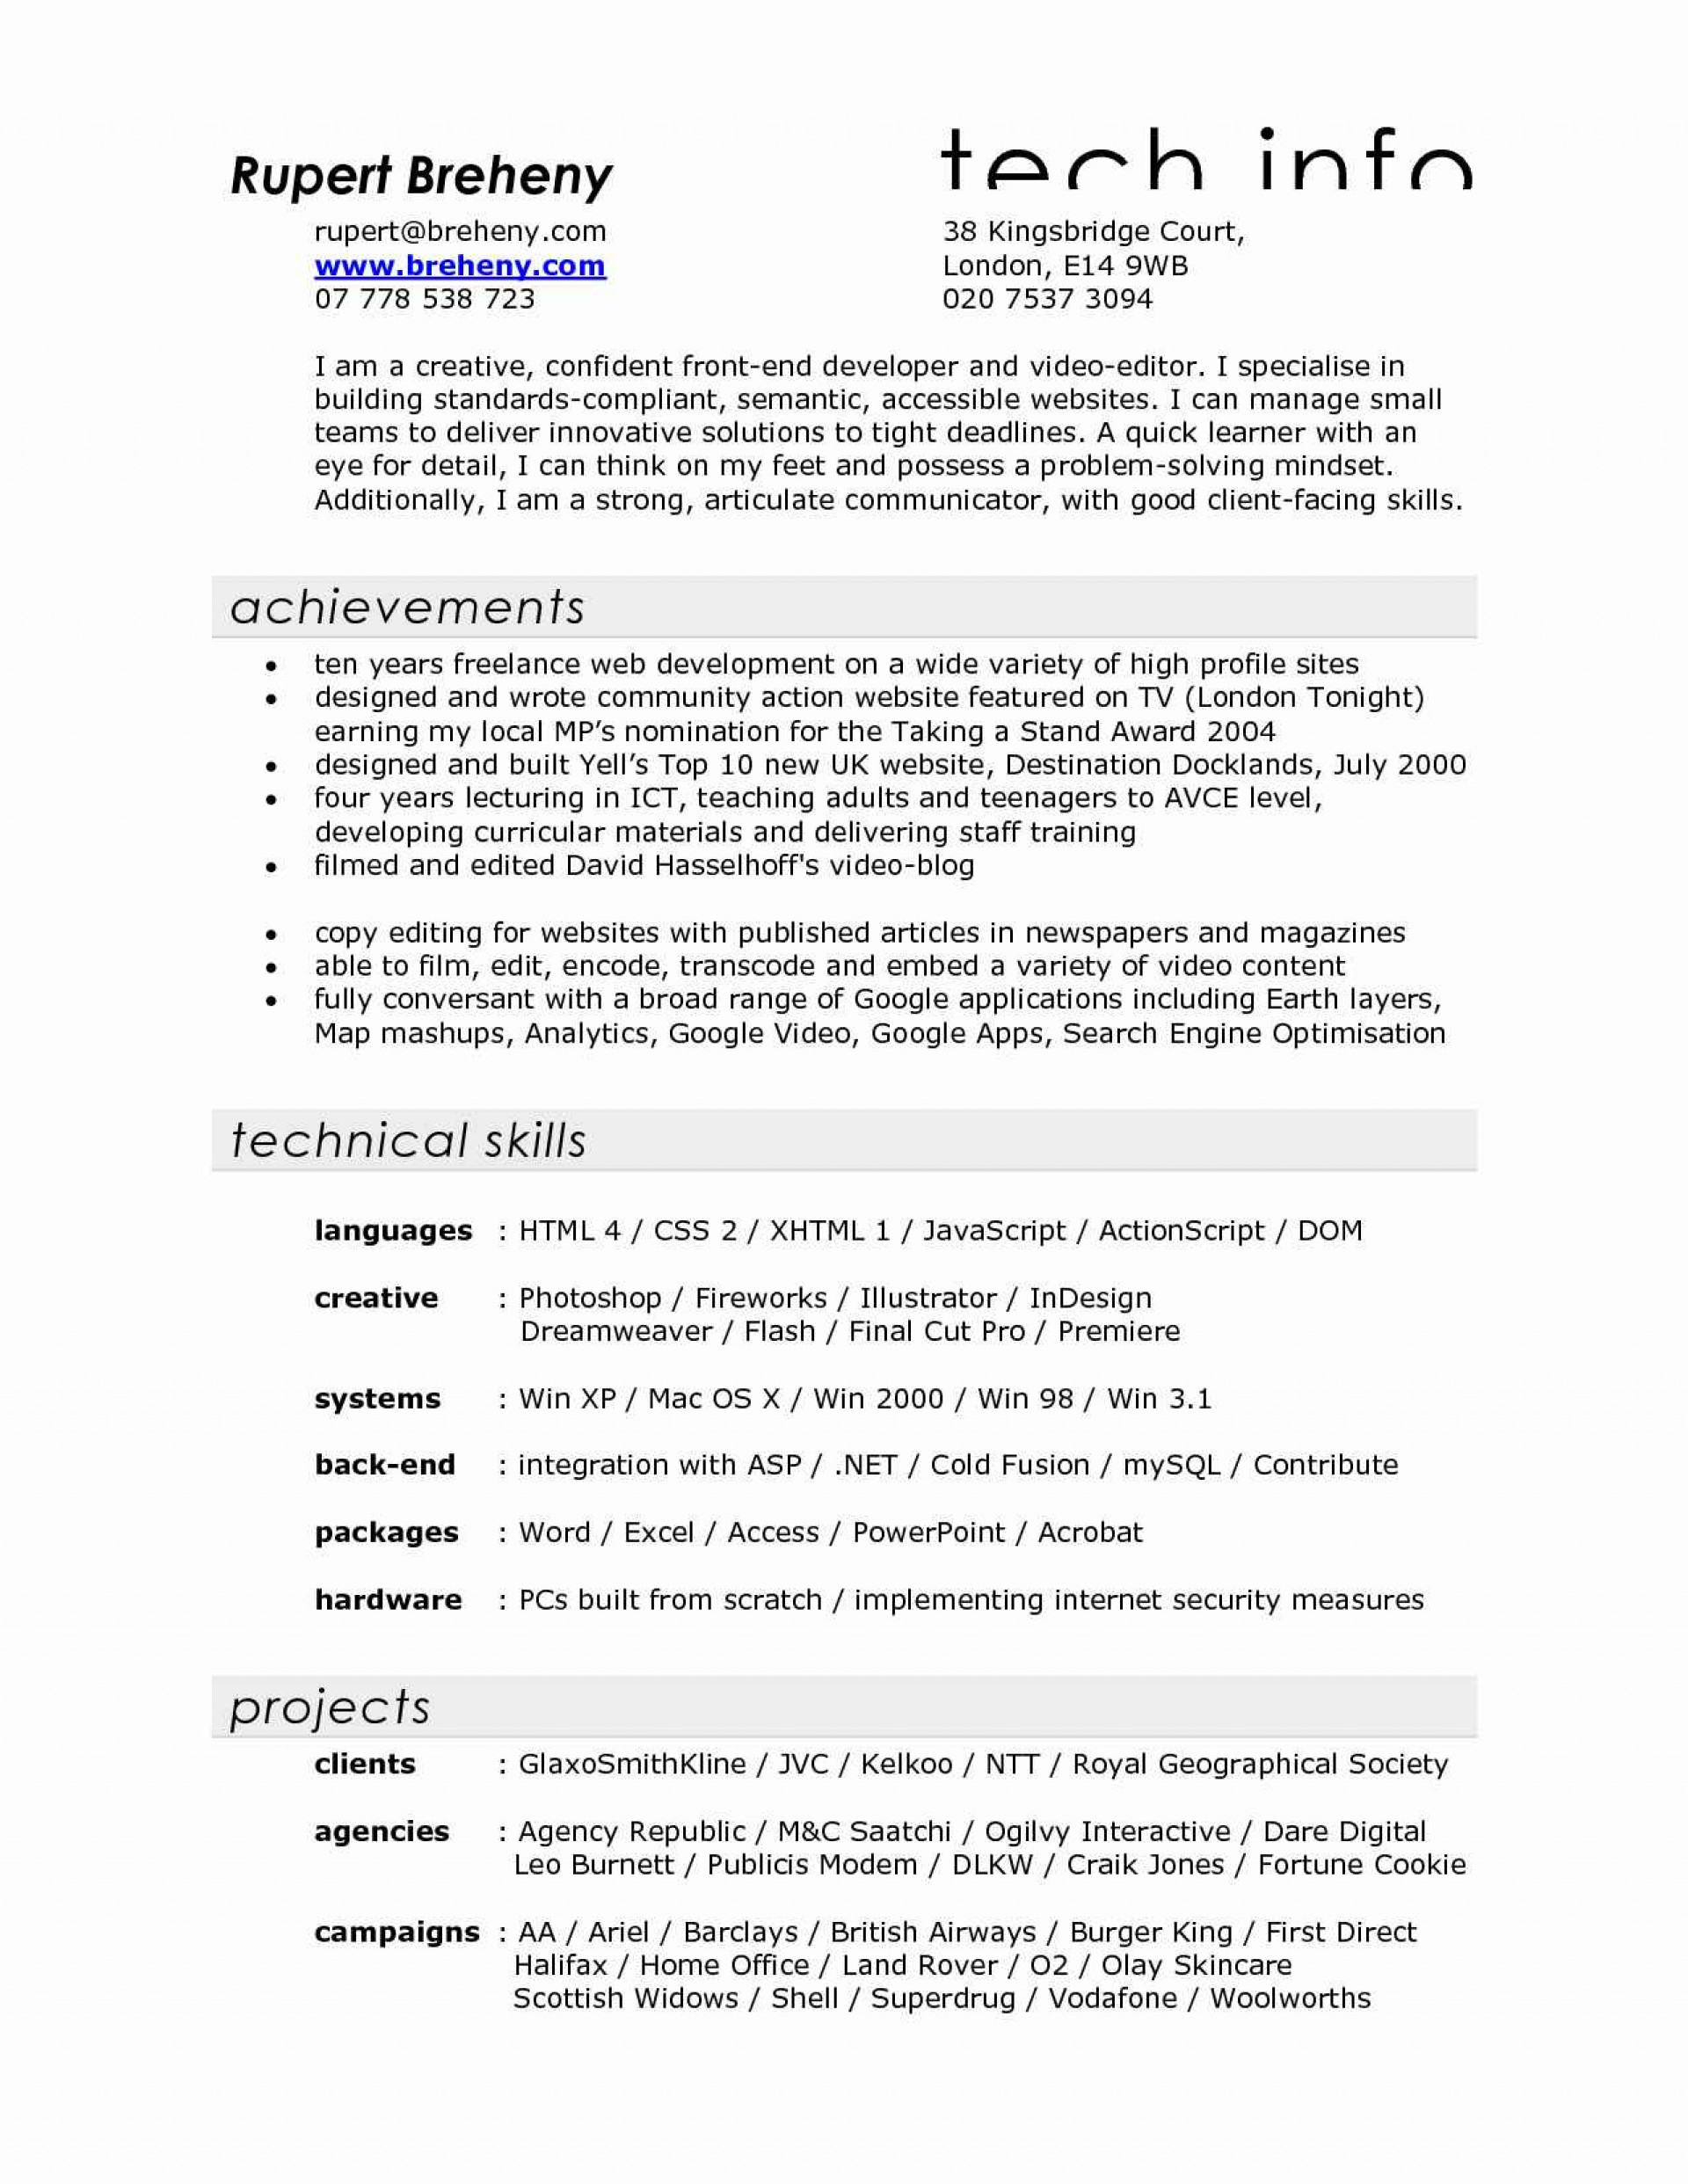 011 Film Director Resume Template Inspirational Gre Awa Analytical Essays For Writing Issue Essay Sample S Breathtaking In Hindi About Life And Struggles Fathers 1920